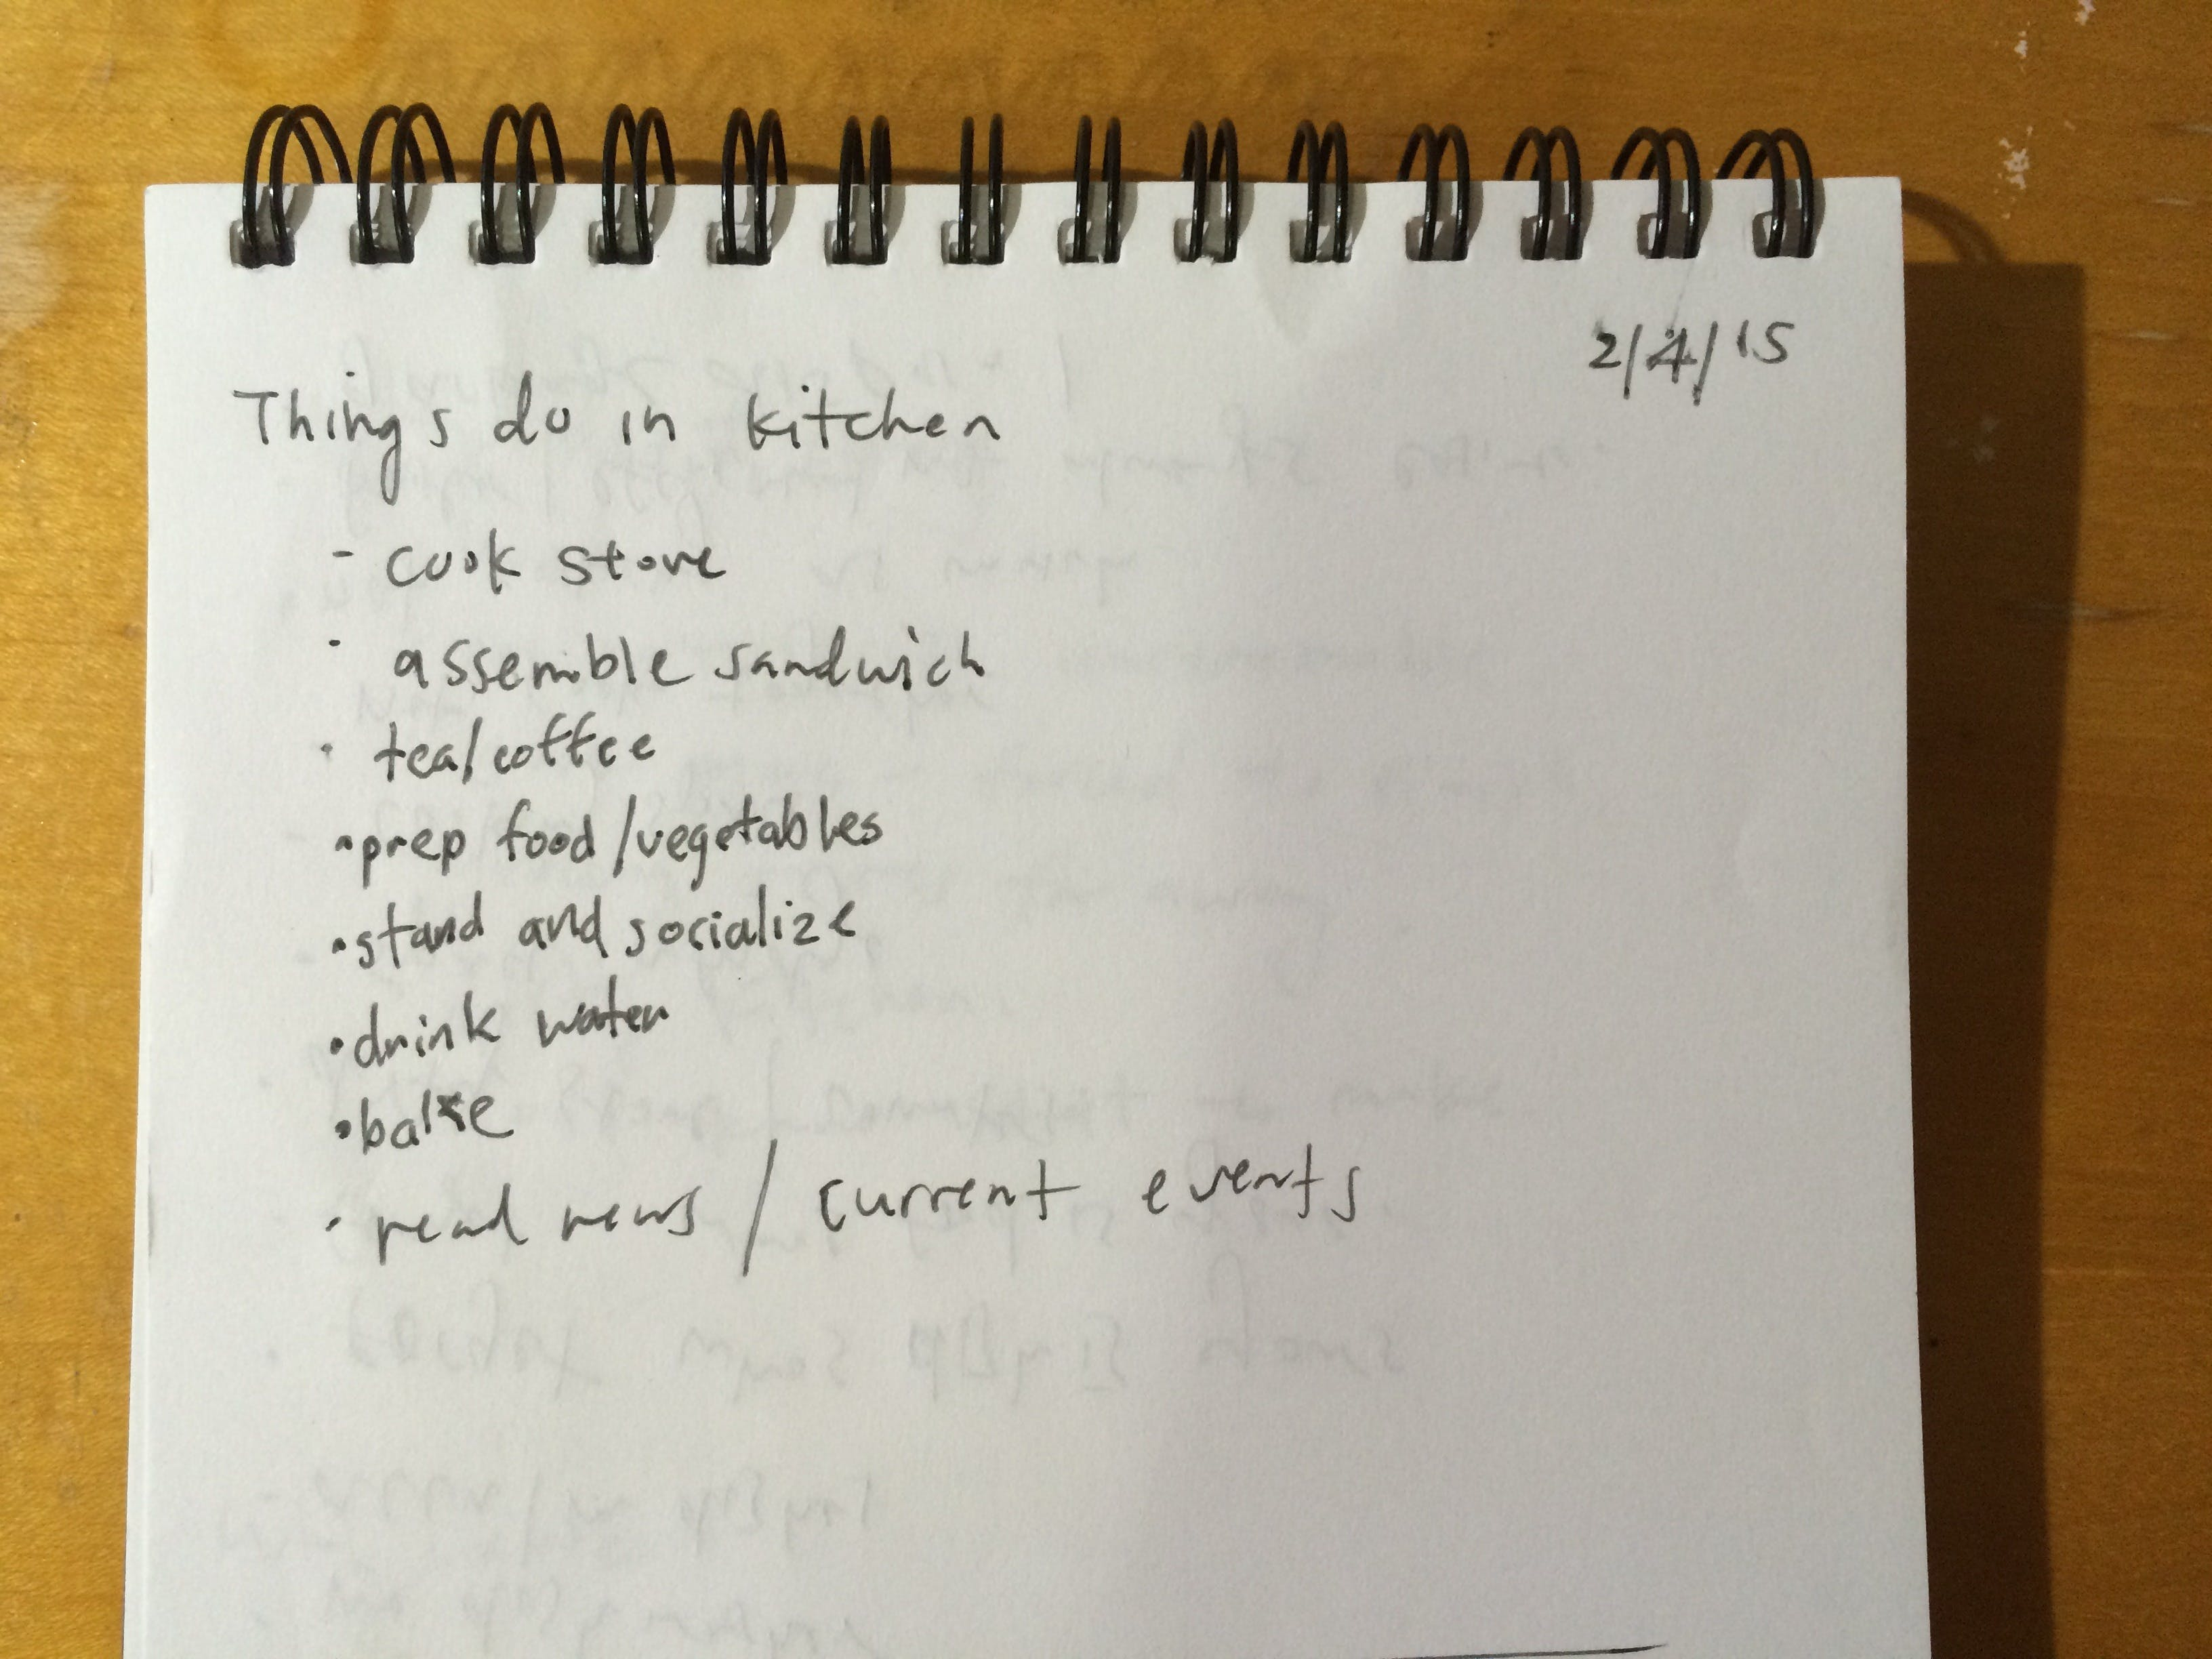 Listing out things we do in the kitchen.